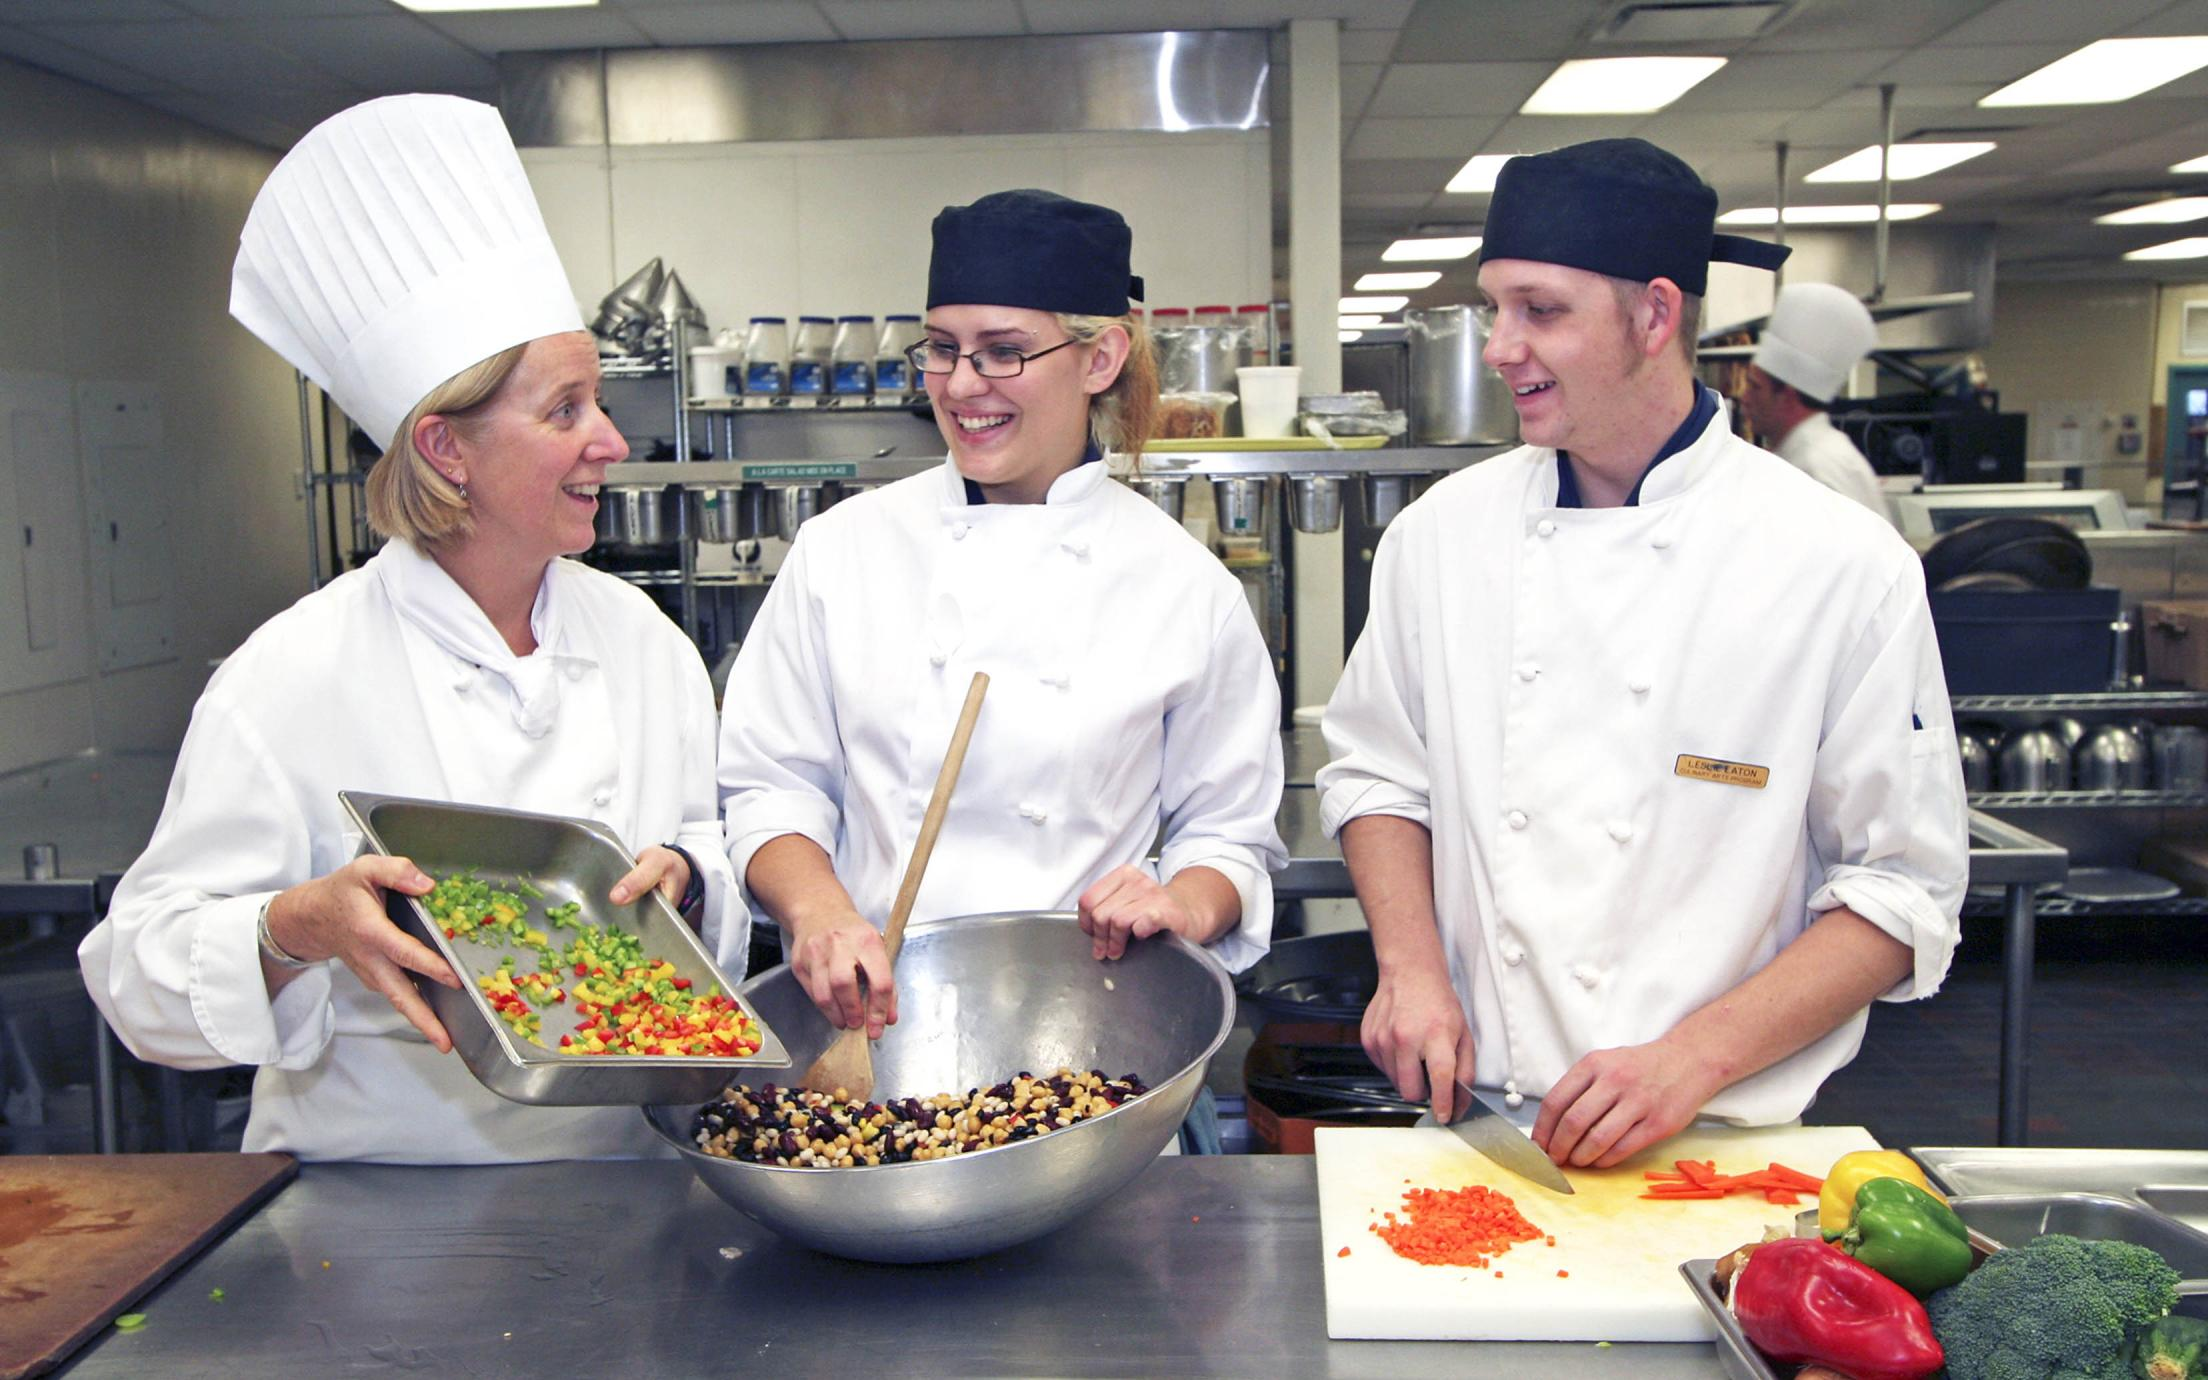 Three students of the Culinary Arts program at VIU's Culinary School